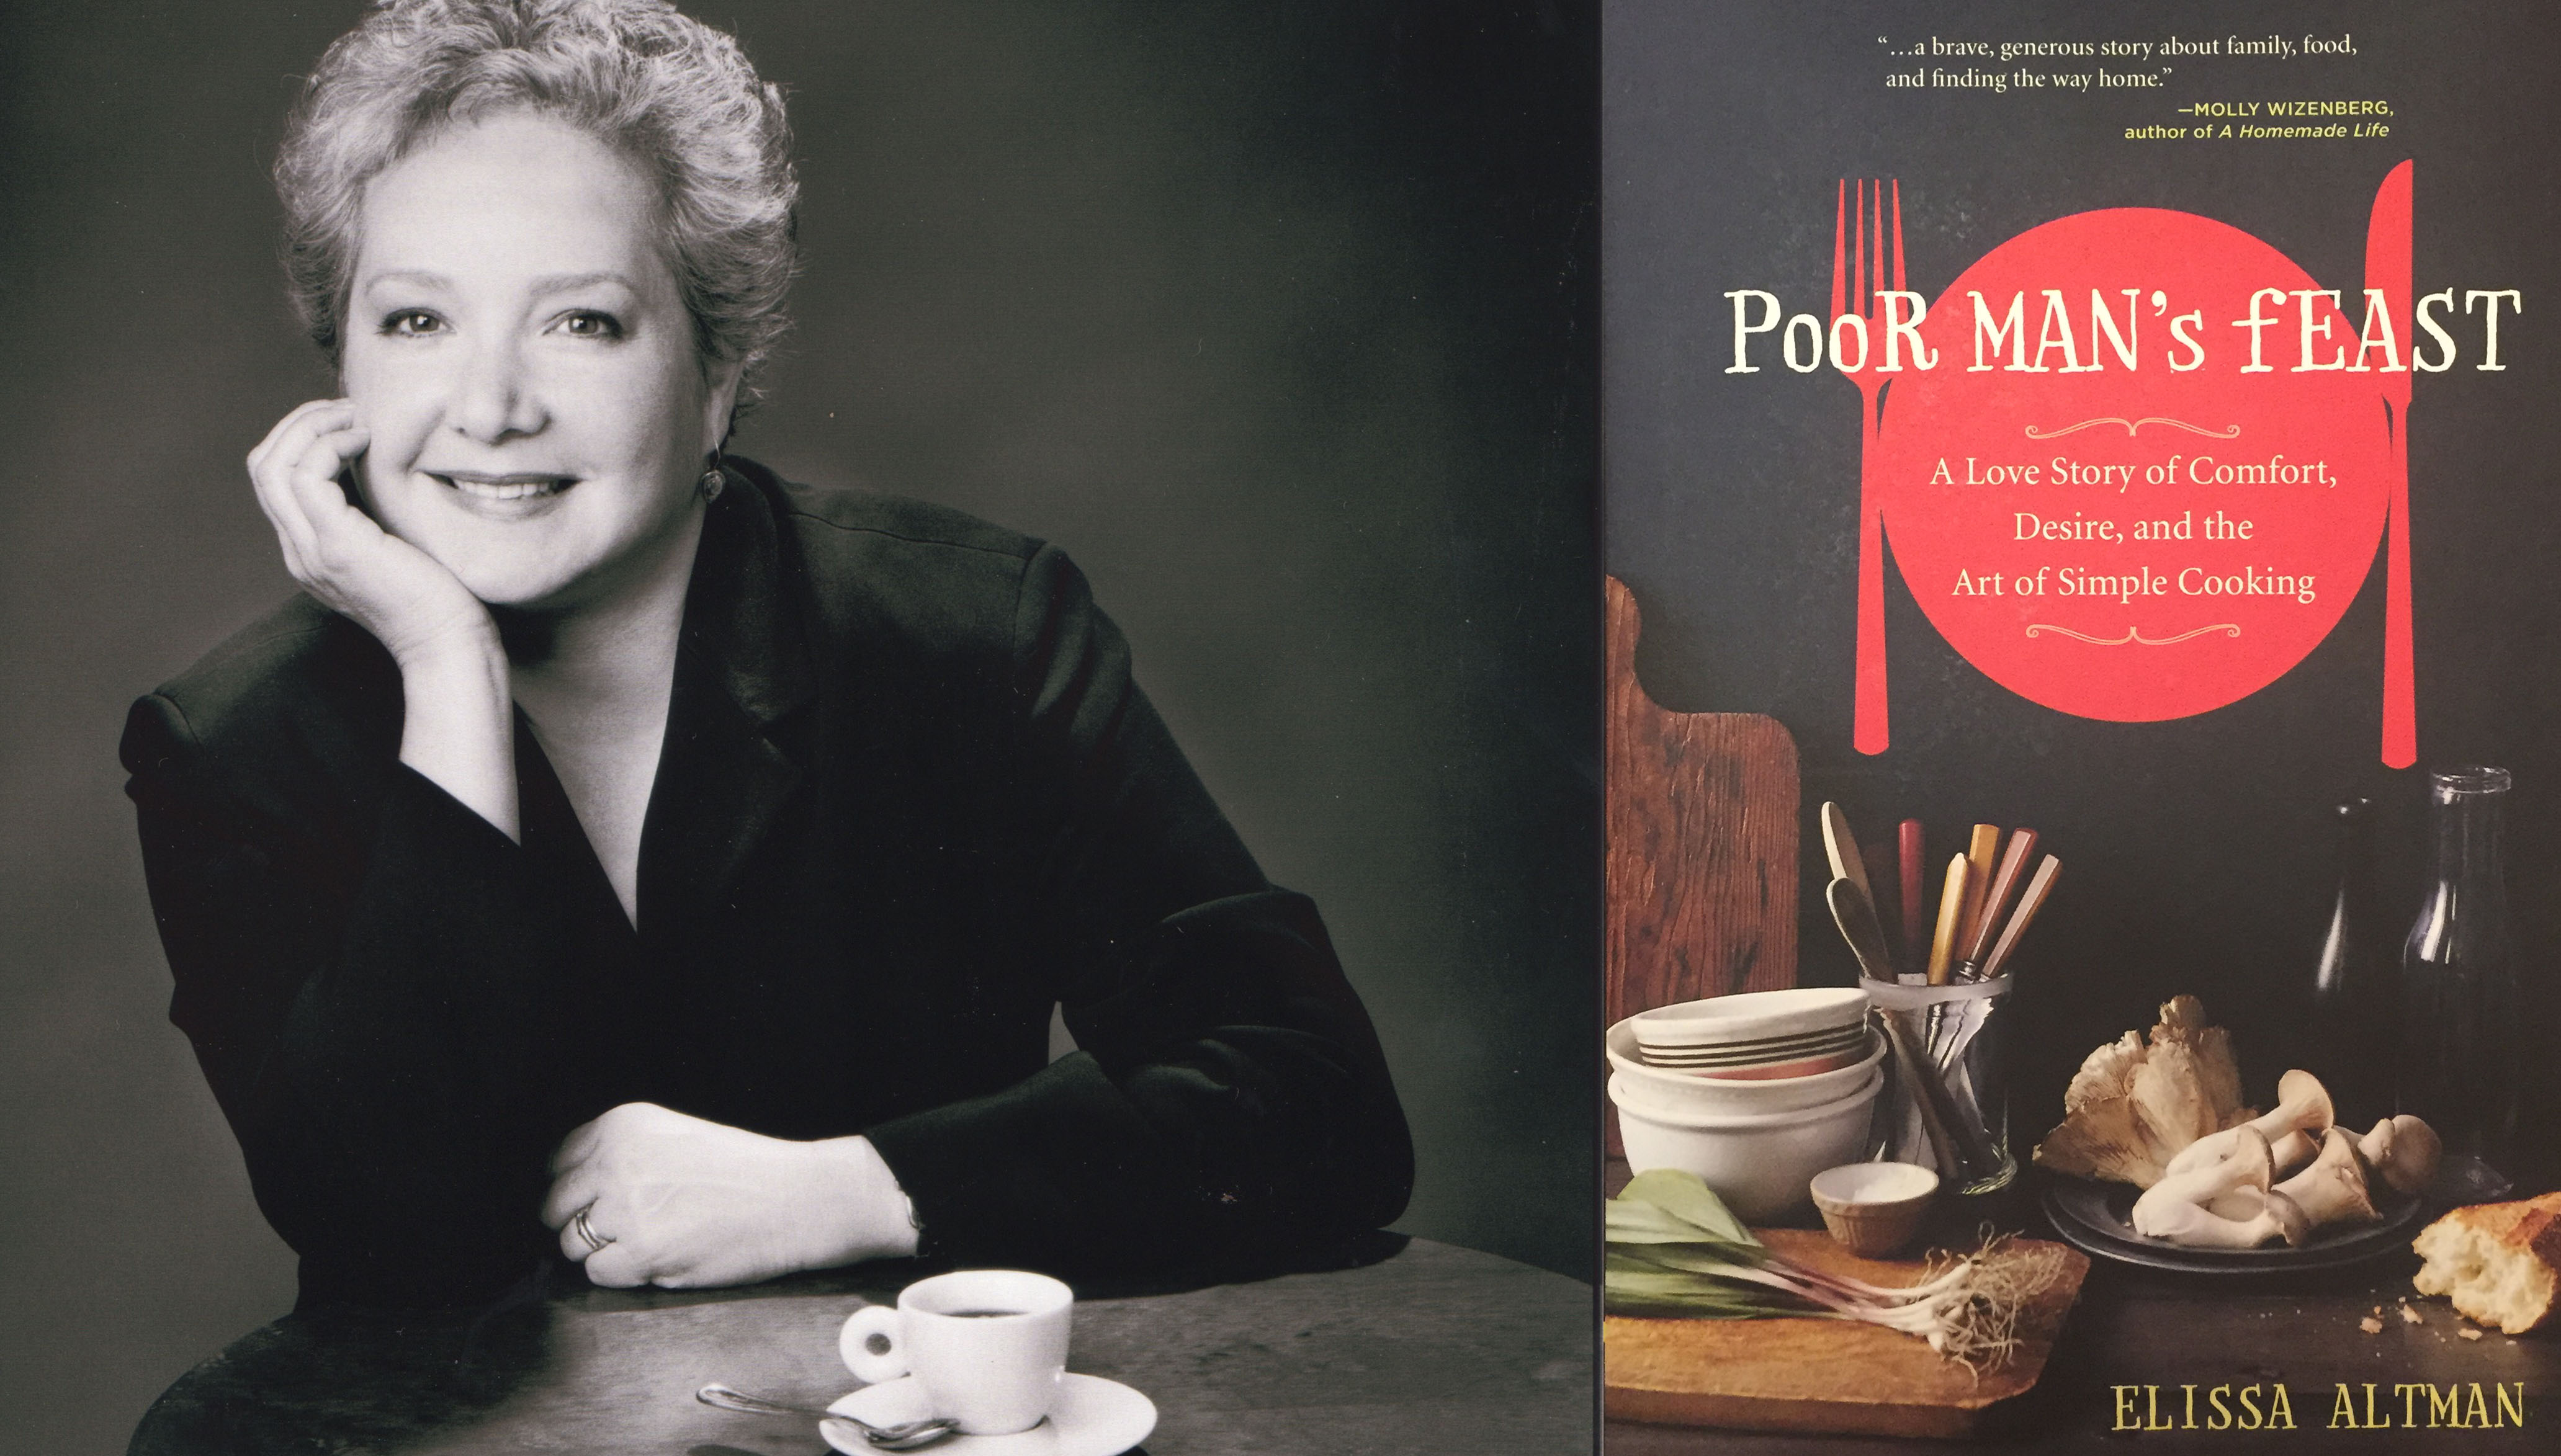 Poor Man's Feast: A Love Story of Comfort, Desire, and the Art of Simple Cooking, by Elissa Altman: Next Book Group Selection